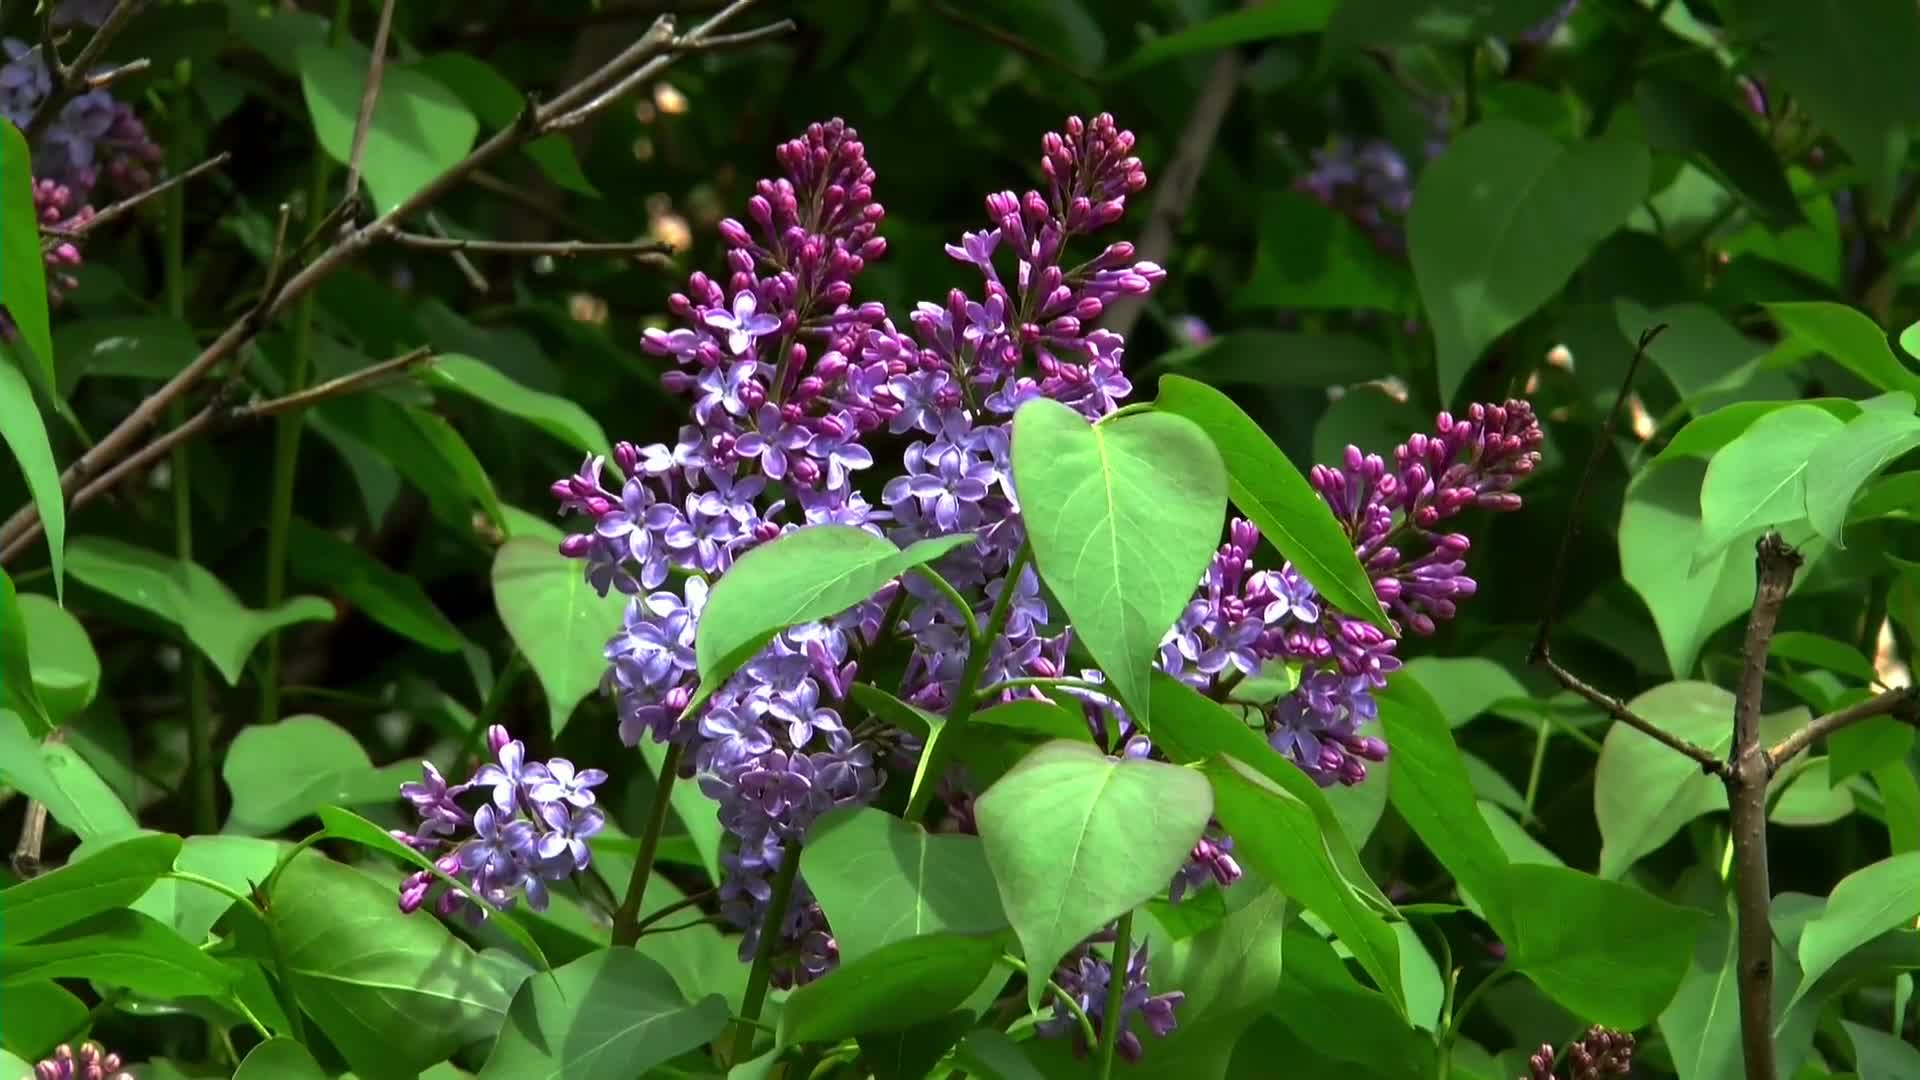 Video of purple lilac plant